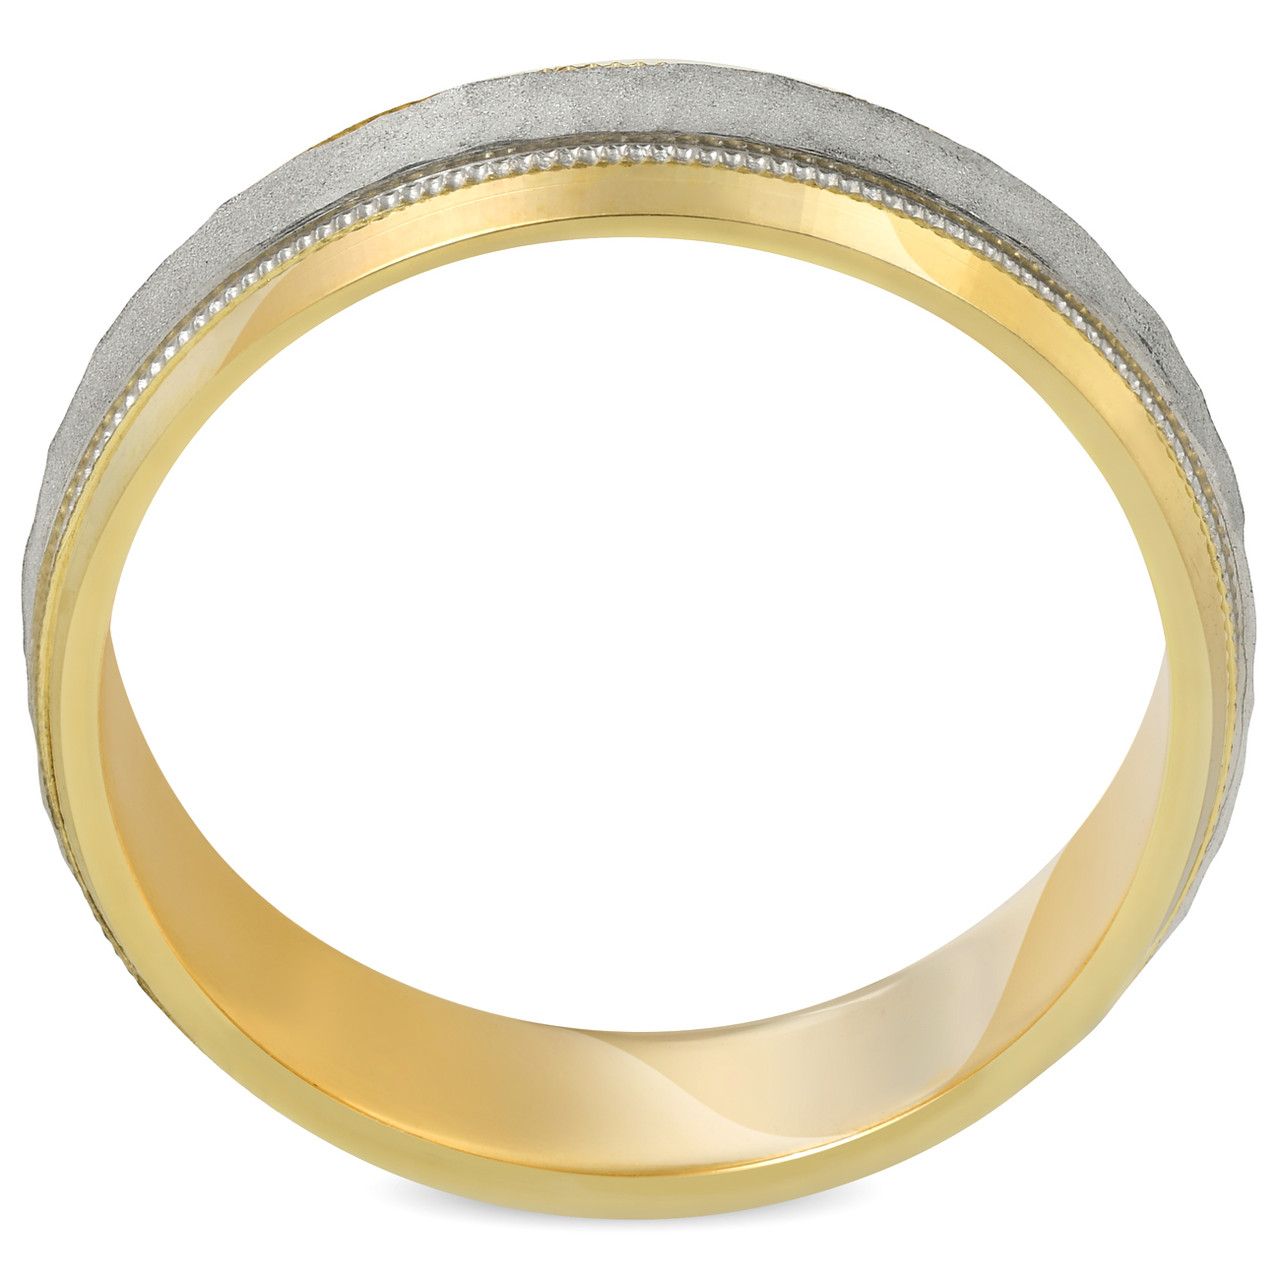 ddb1ec75df5a3 Platinum & 18k Yellow Gold 6MM Sandblast Brushed Mens Wedding Band